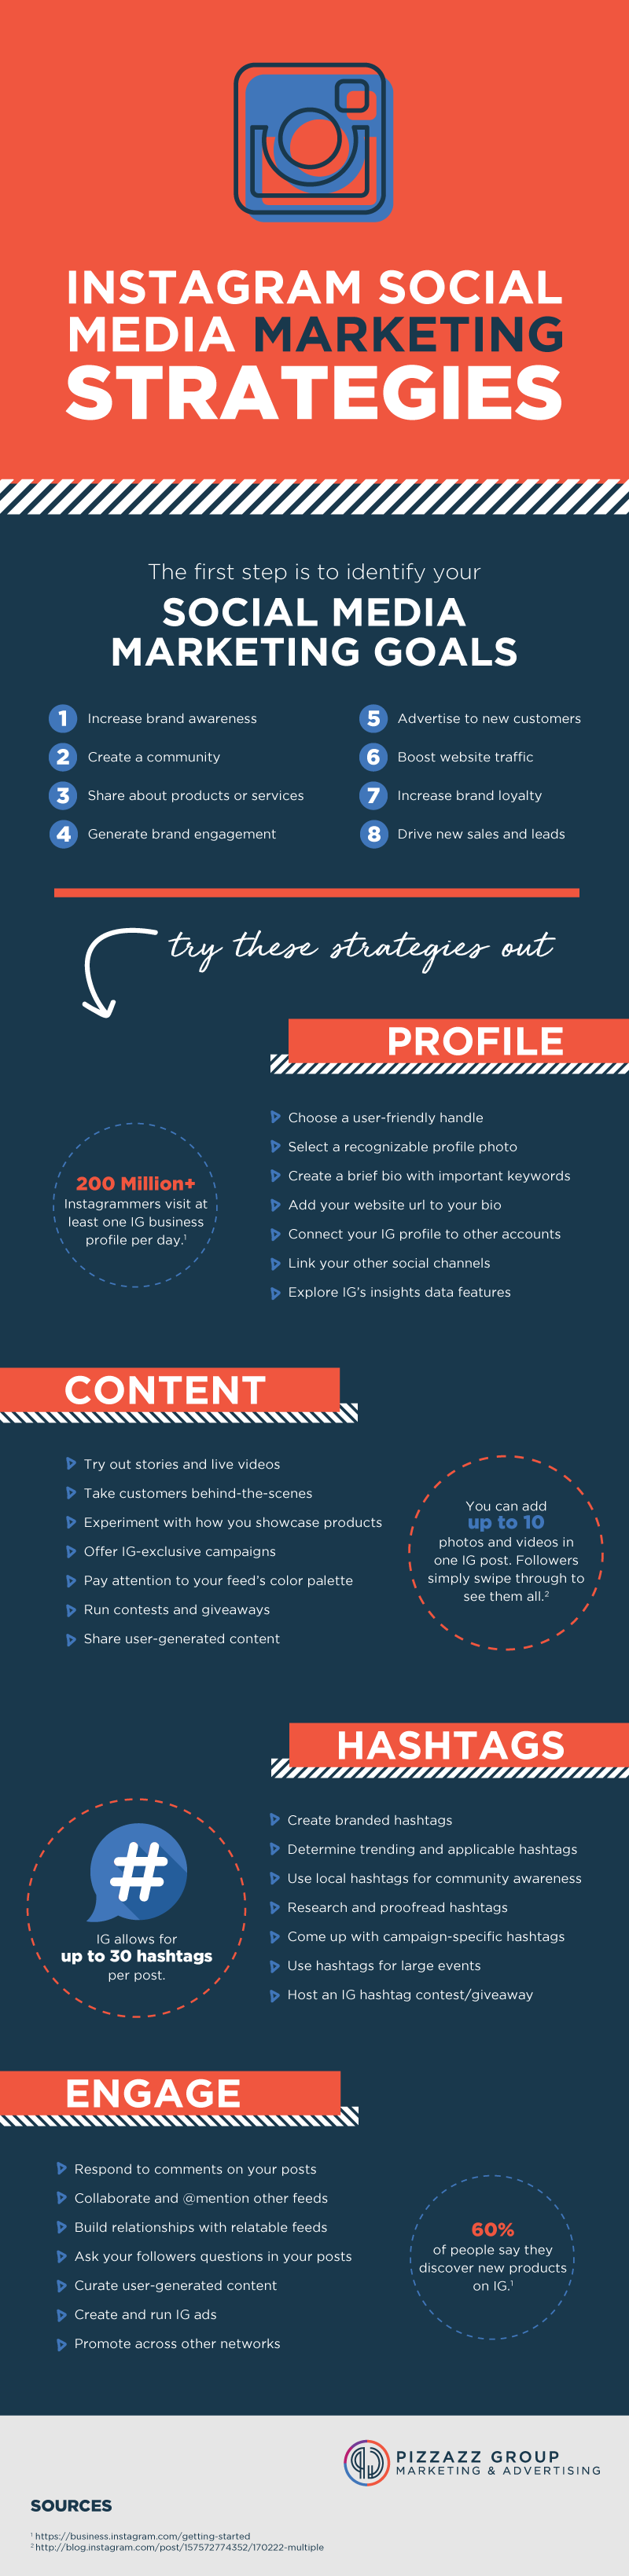 instagram-marketing-strategies-infographic_0.png